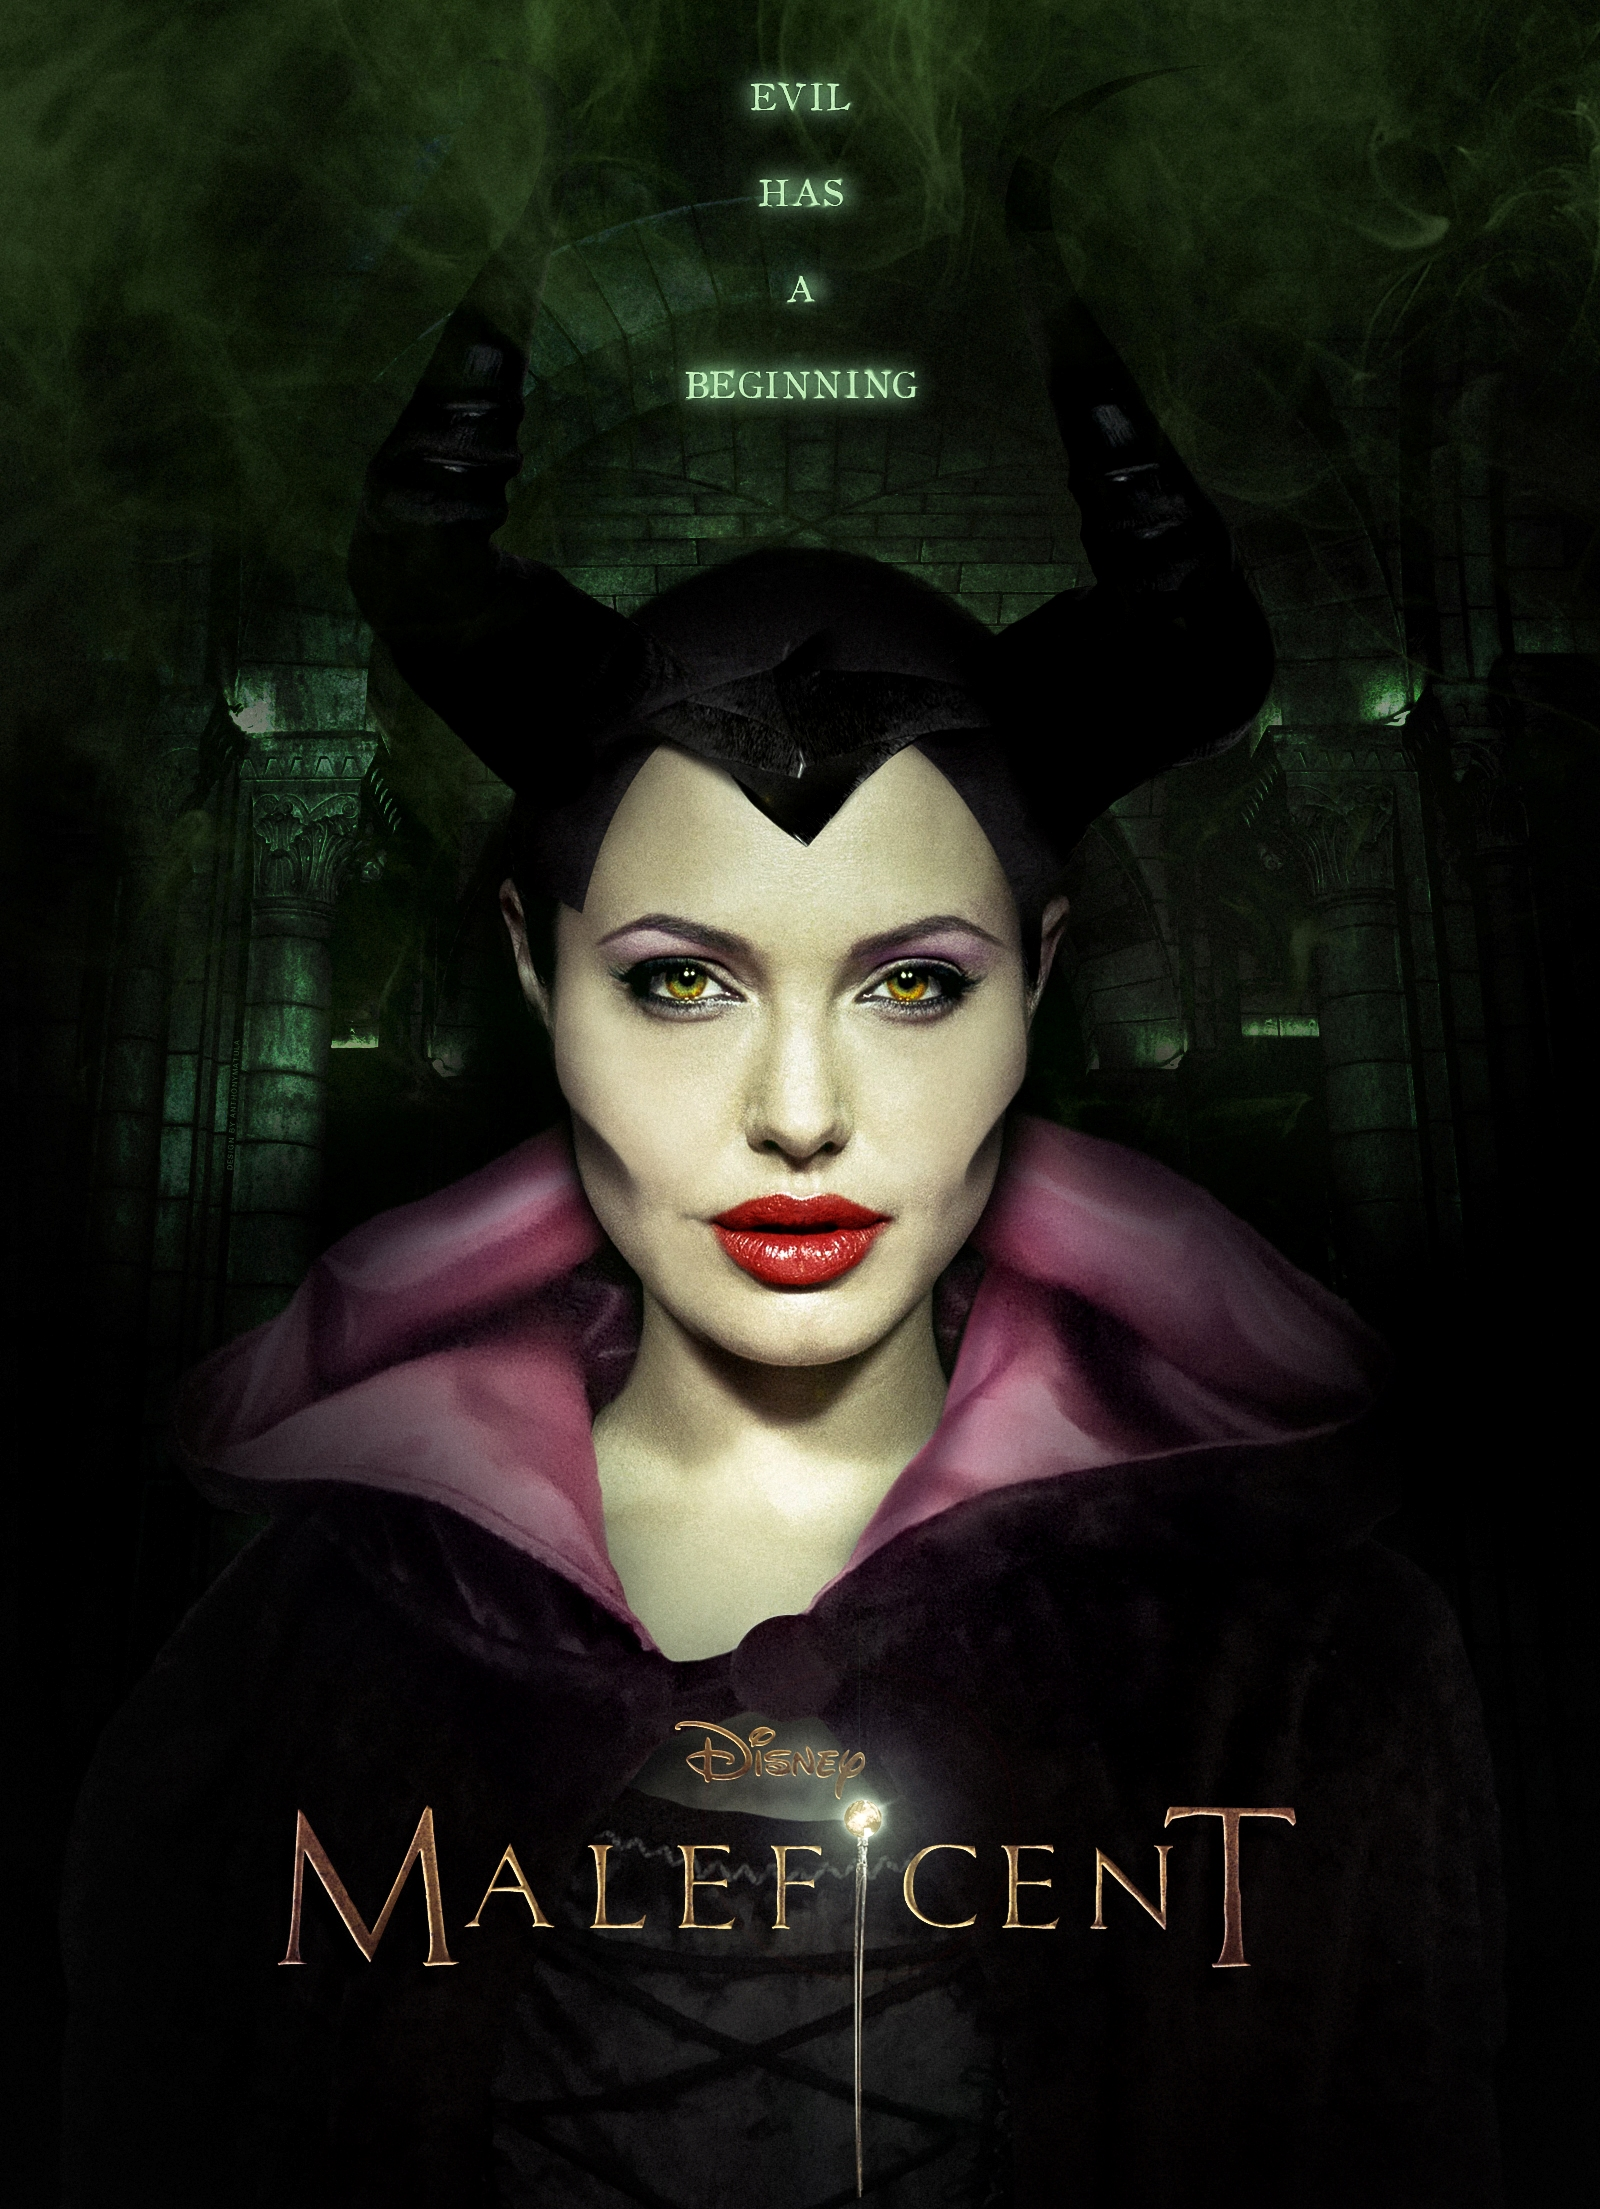 maleficent_teaserposter